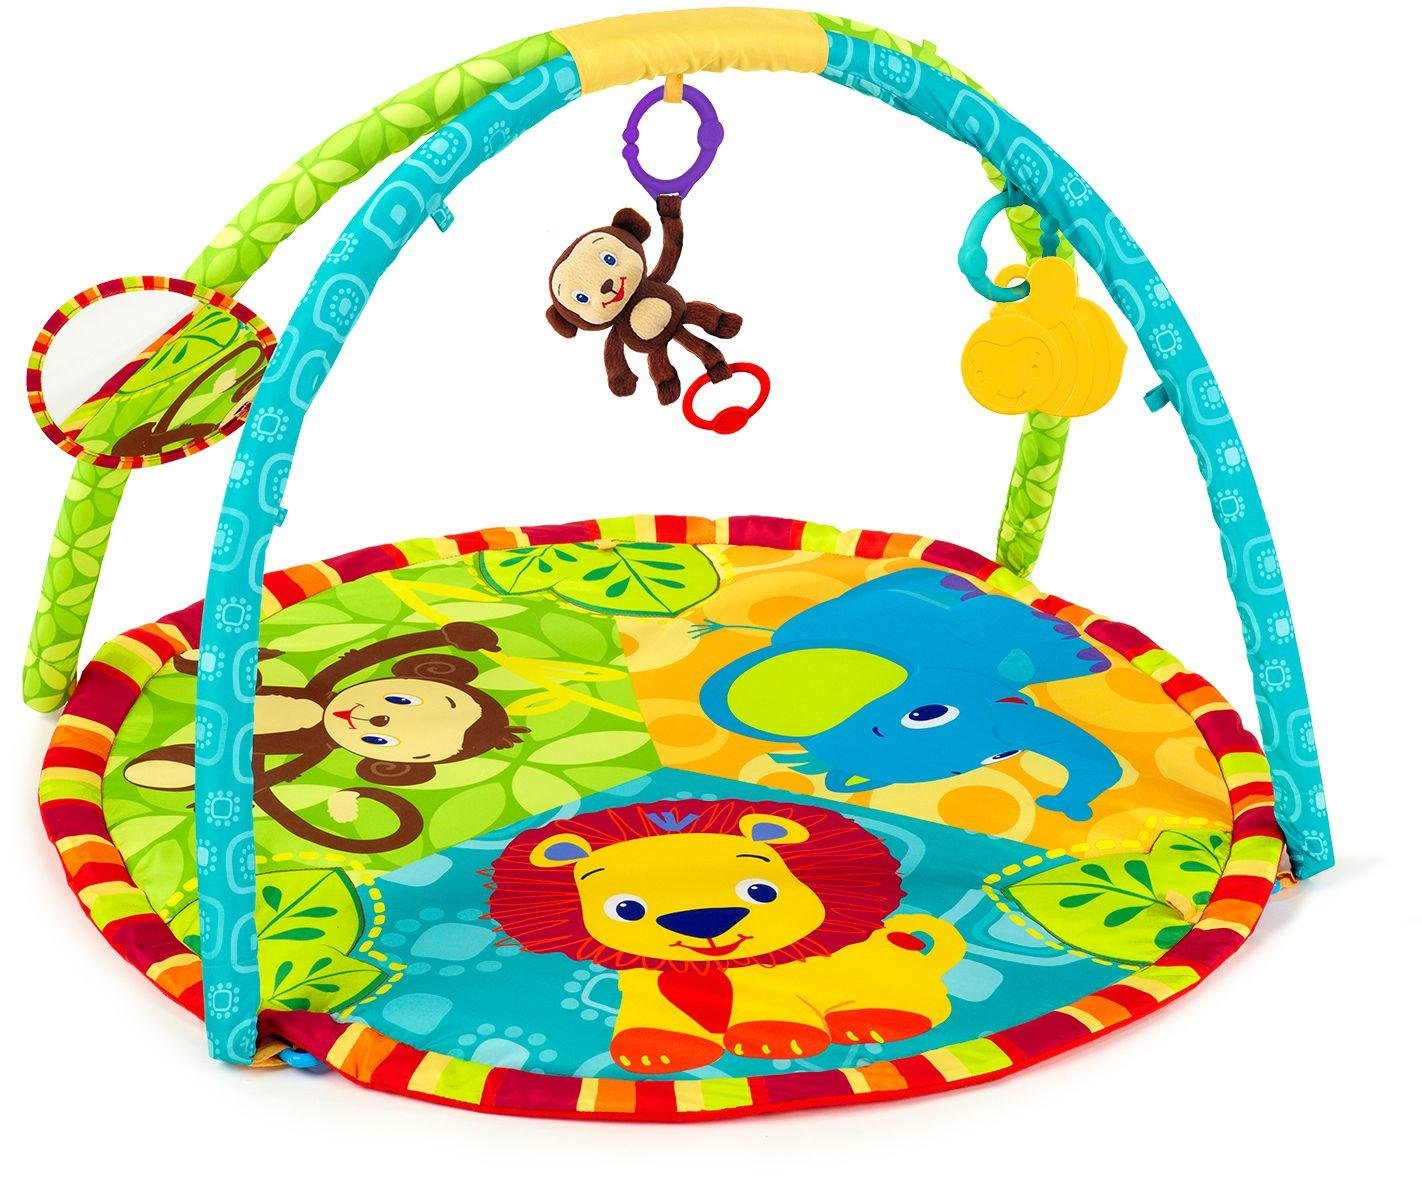 Bright Starts Pal Around Jungle Activity Gym